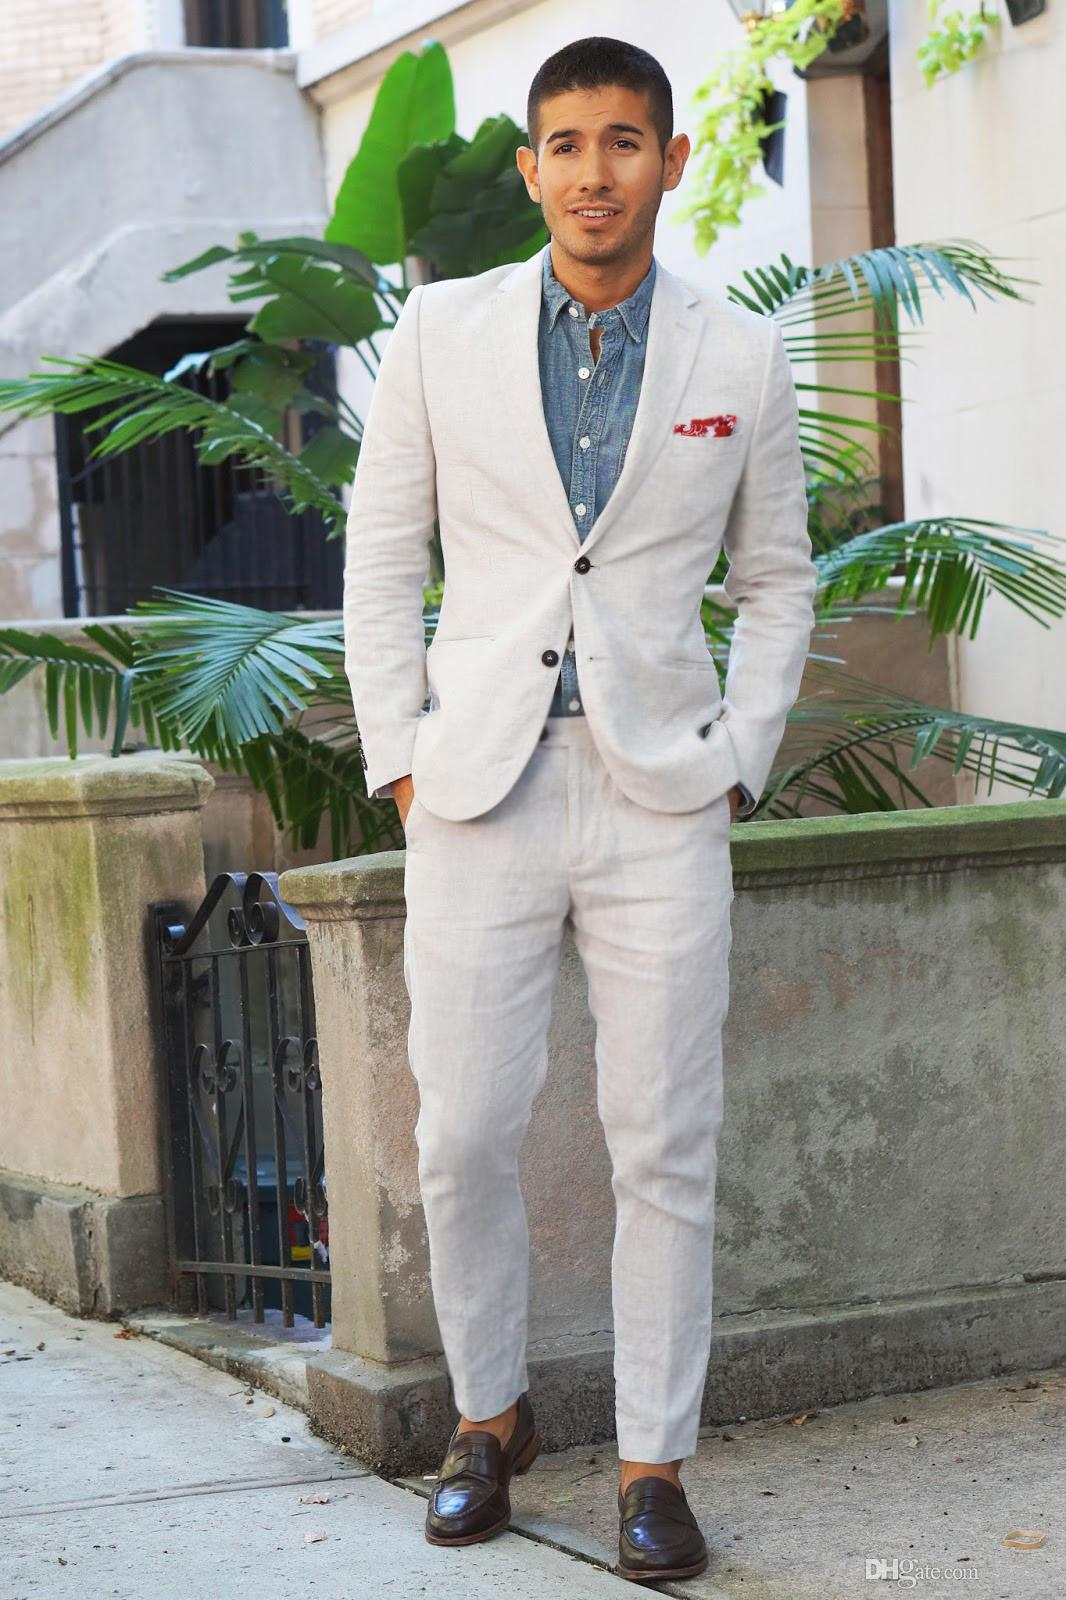 Summer Custom Made Men Suits Ivory Linen Men Suits for Wedding Groom Wear Wedding Tuxedos Groomsmen Casual Prom Party 2 Piece Jacket+Pants